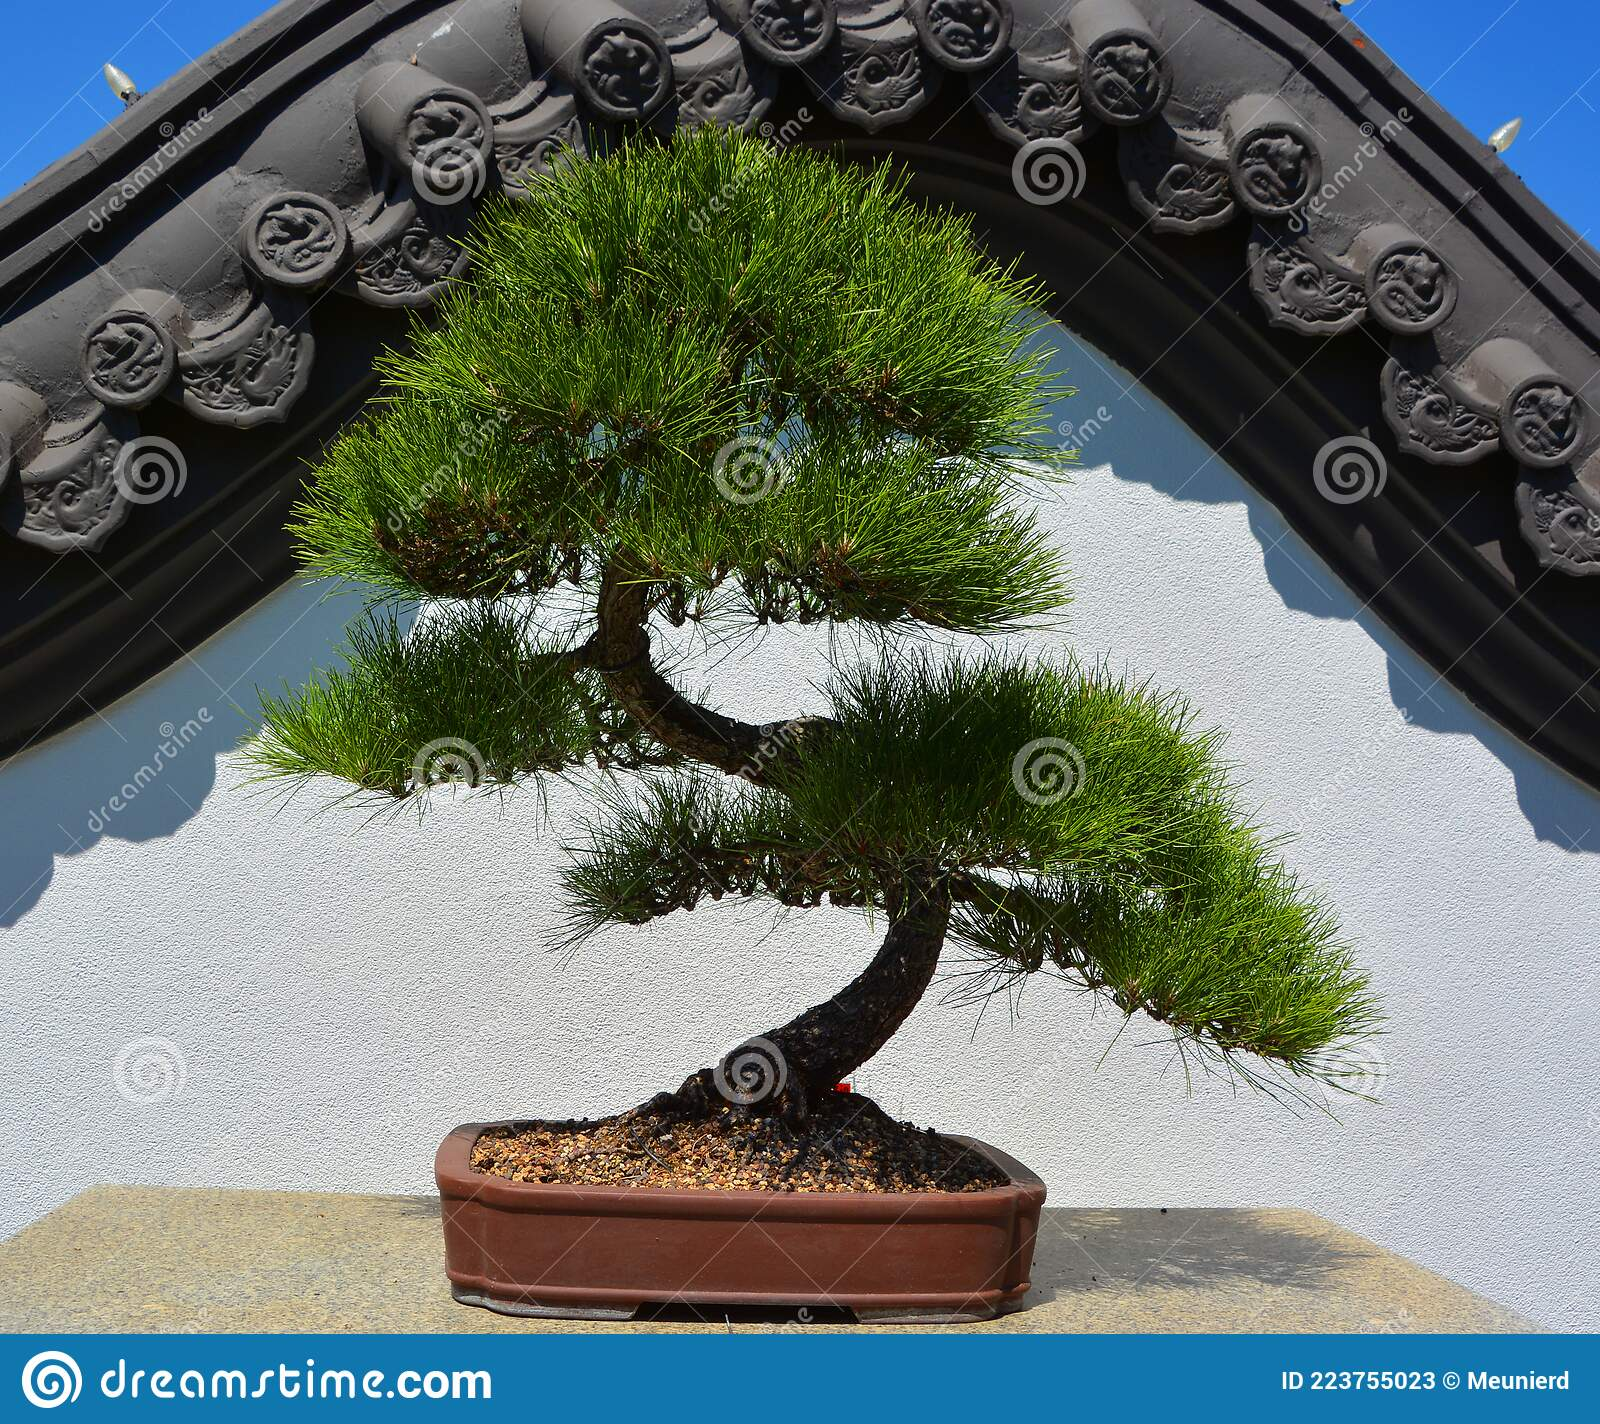 art form using small trees Bonsai. It Is An Asian Art Form Using Cultivation Techniques To